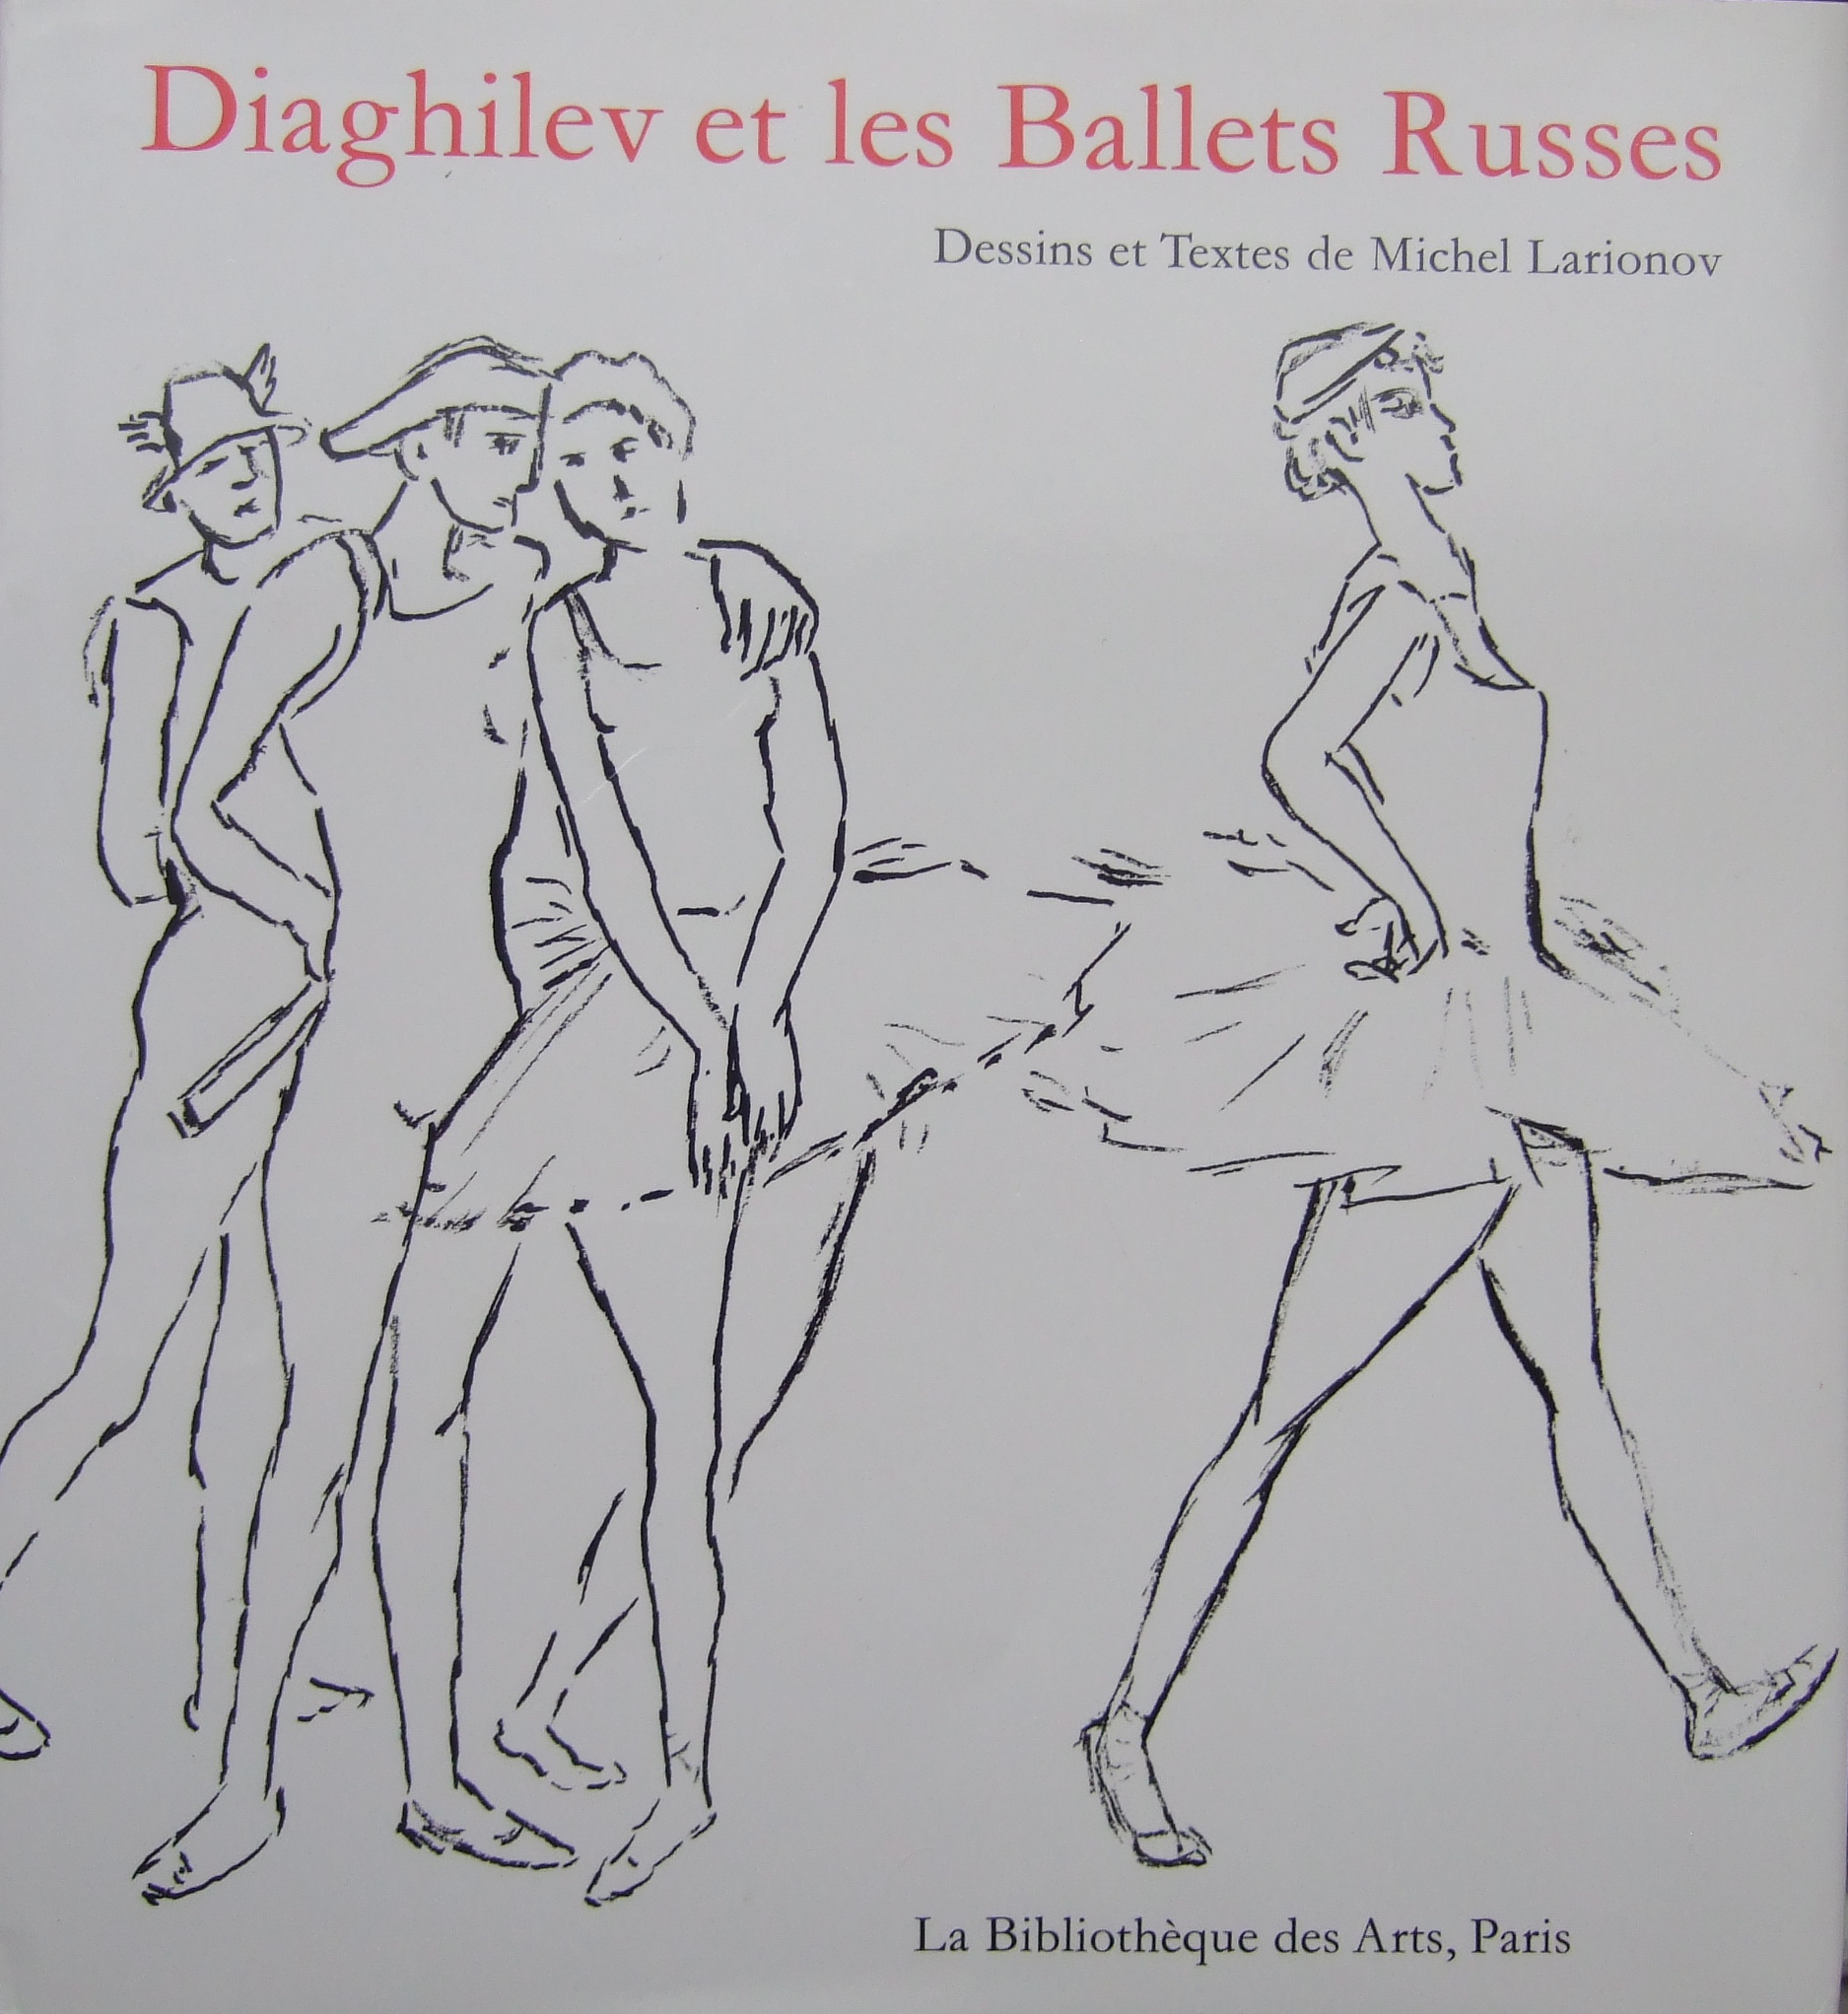 "Book ""Diaghilev et les Ballets Russes"" with design and text by M. Larionov."